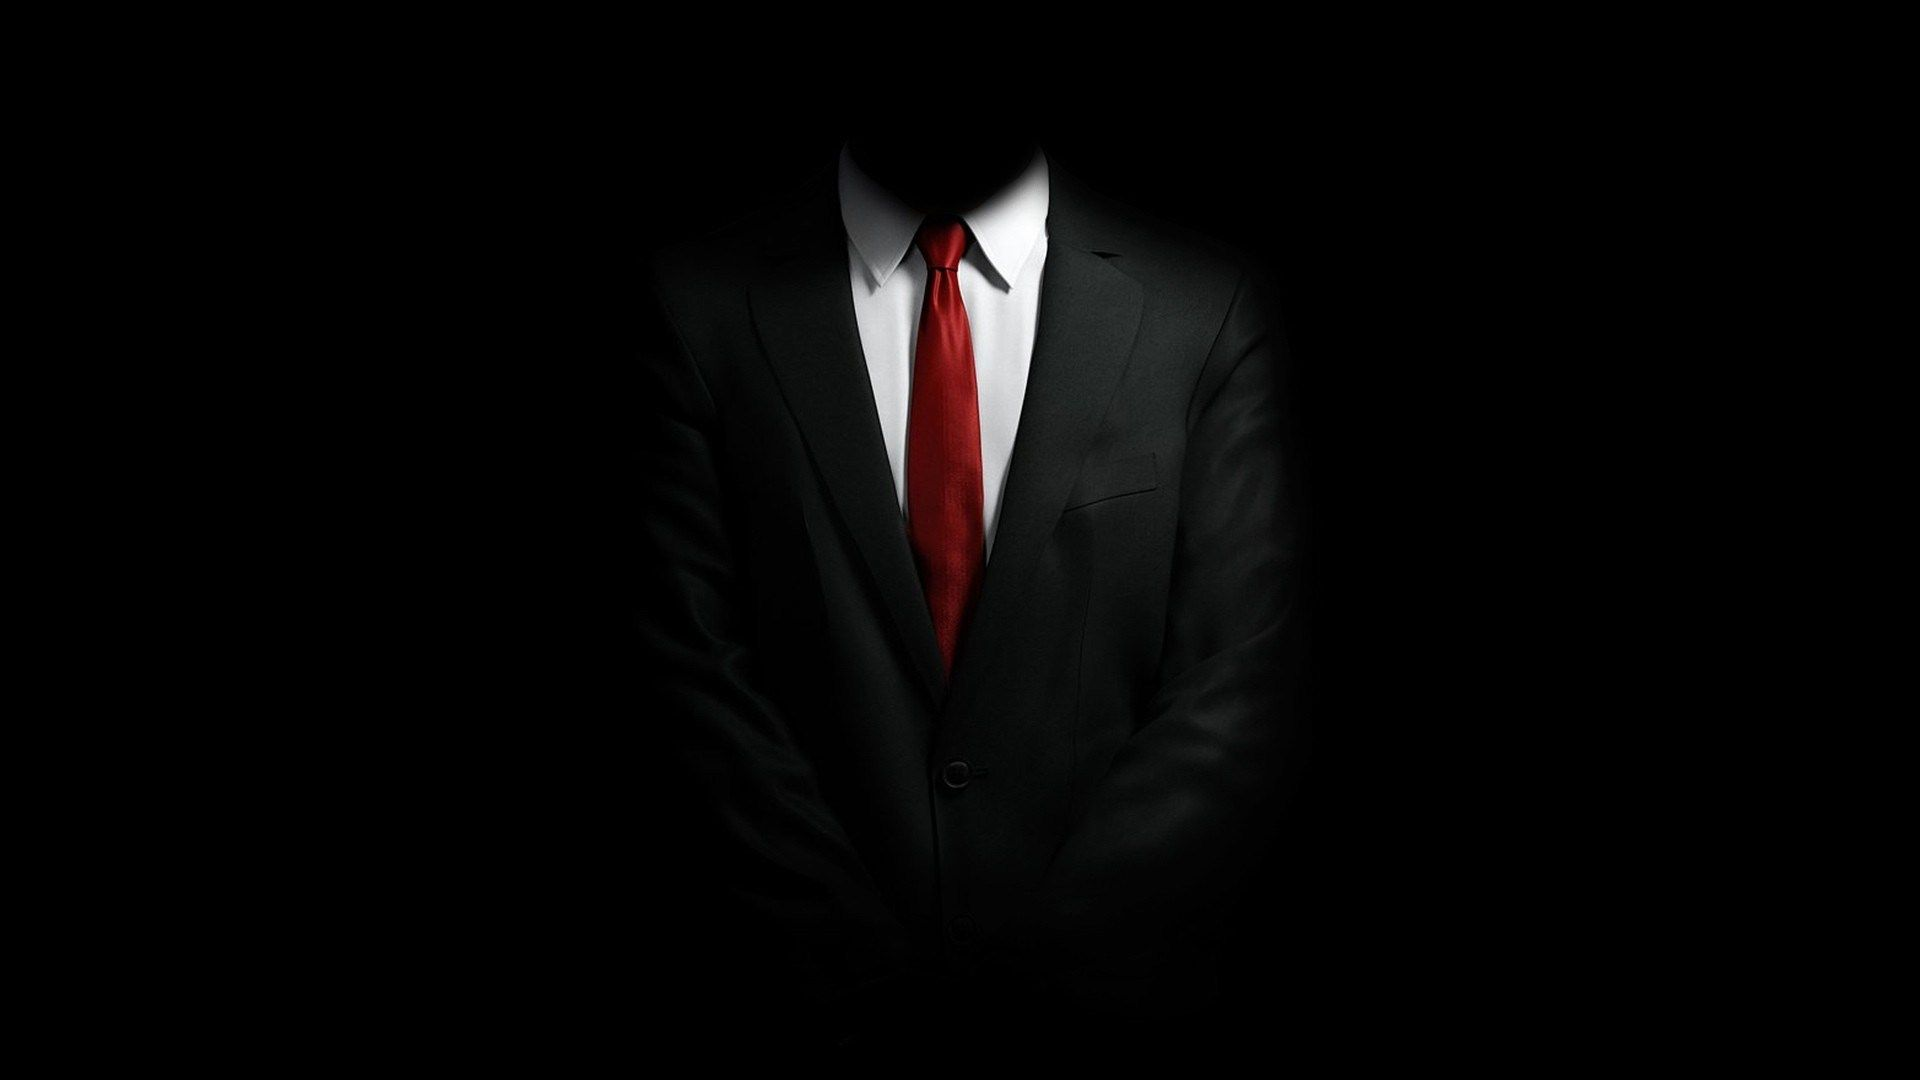 Hd wallpaper red and black - Find This Pin And More On Black Image For Hitman Suit Wallpapers Hd